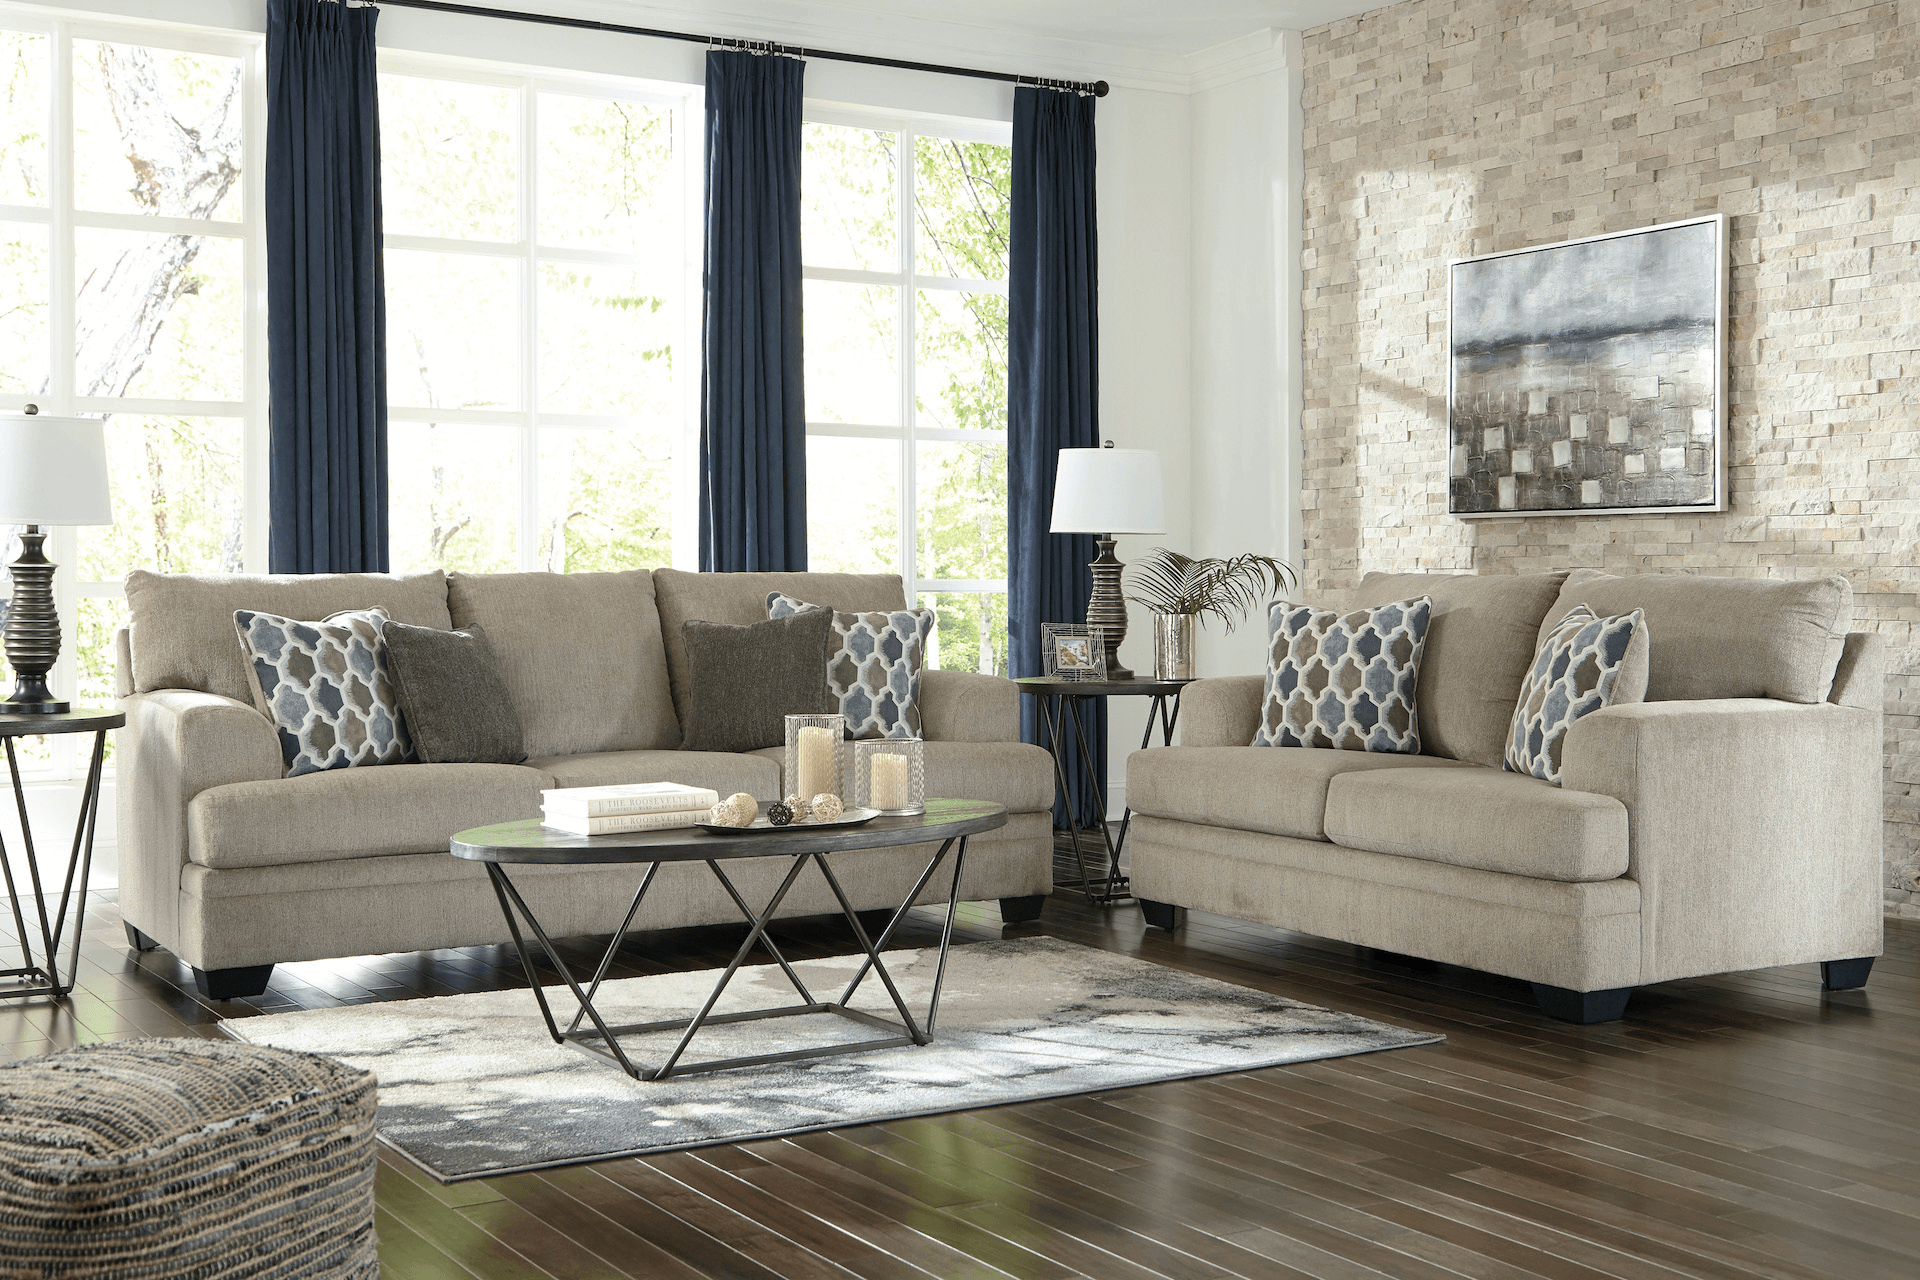 Atlantic_Furniture-Sofa_Sets-77205_T384_hi-res